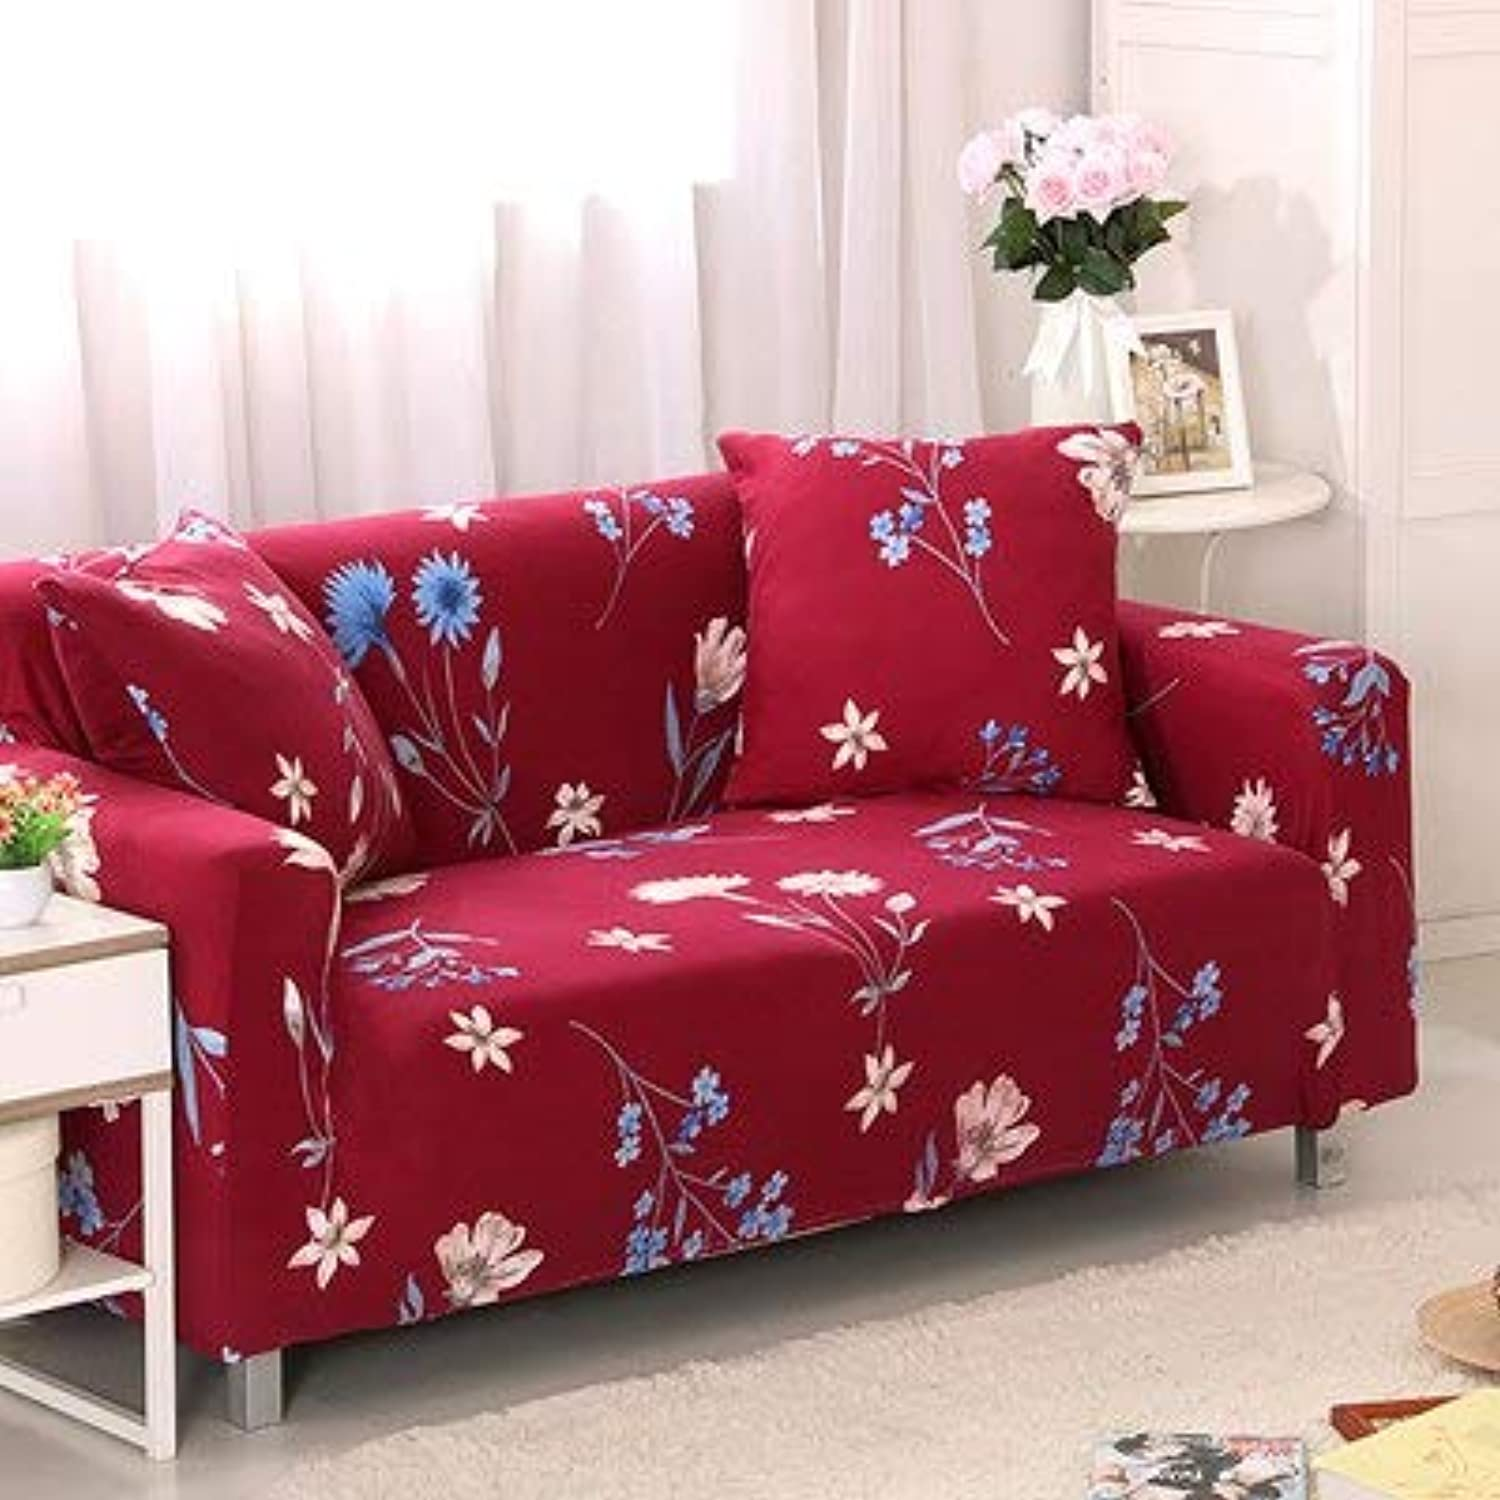 PlenTree Leaves Pattern Sofa Covers Elastic Stretch Universal Sectional Throw Couch Corner Cover Cases for Furniture Armchairs Home Deco  10, Single seat Sofa